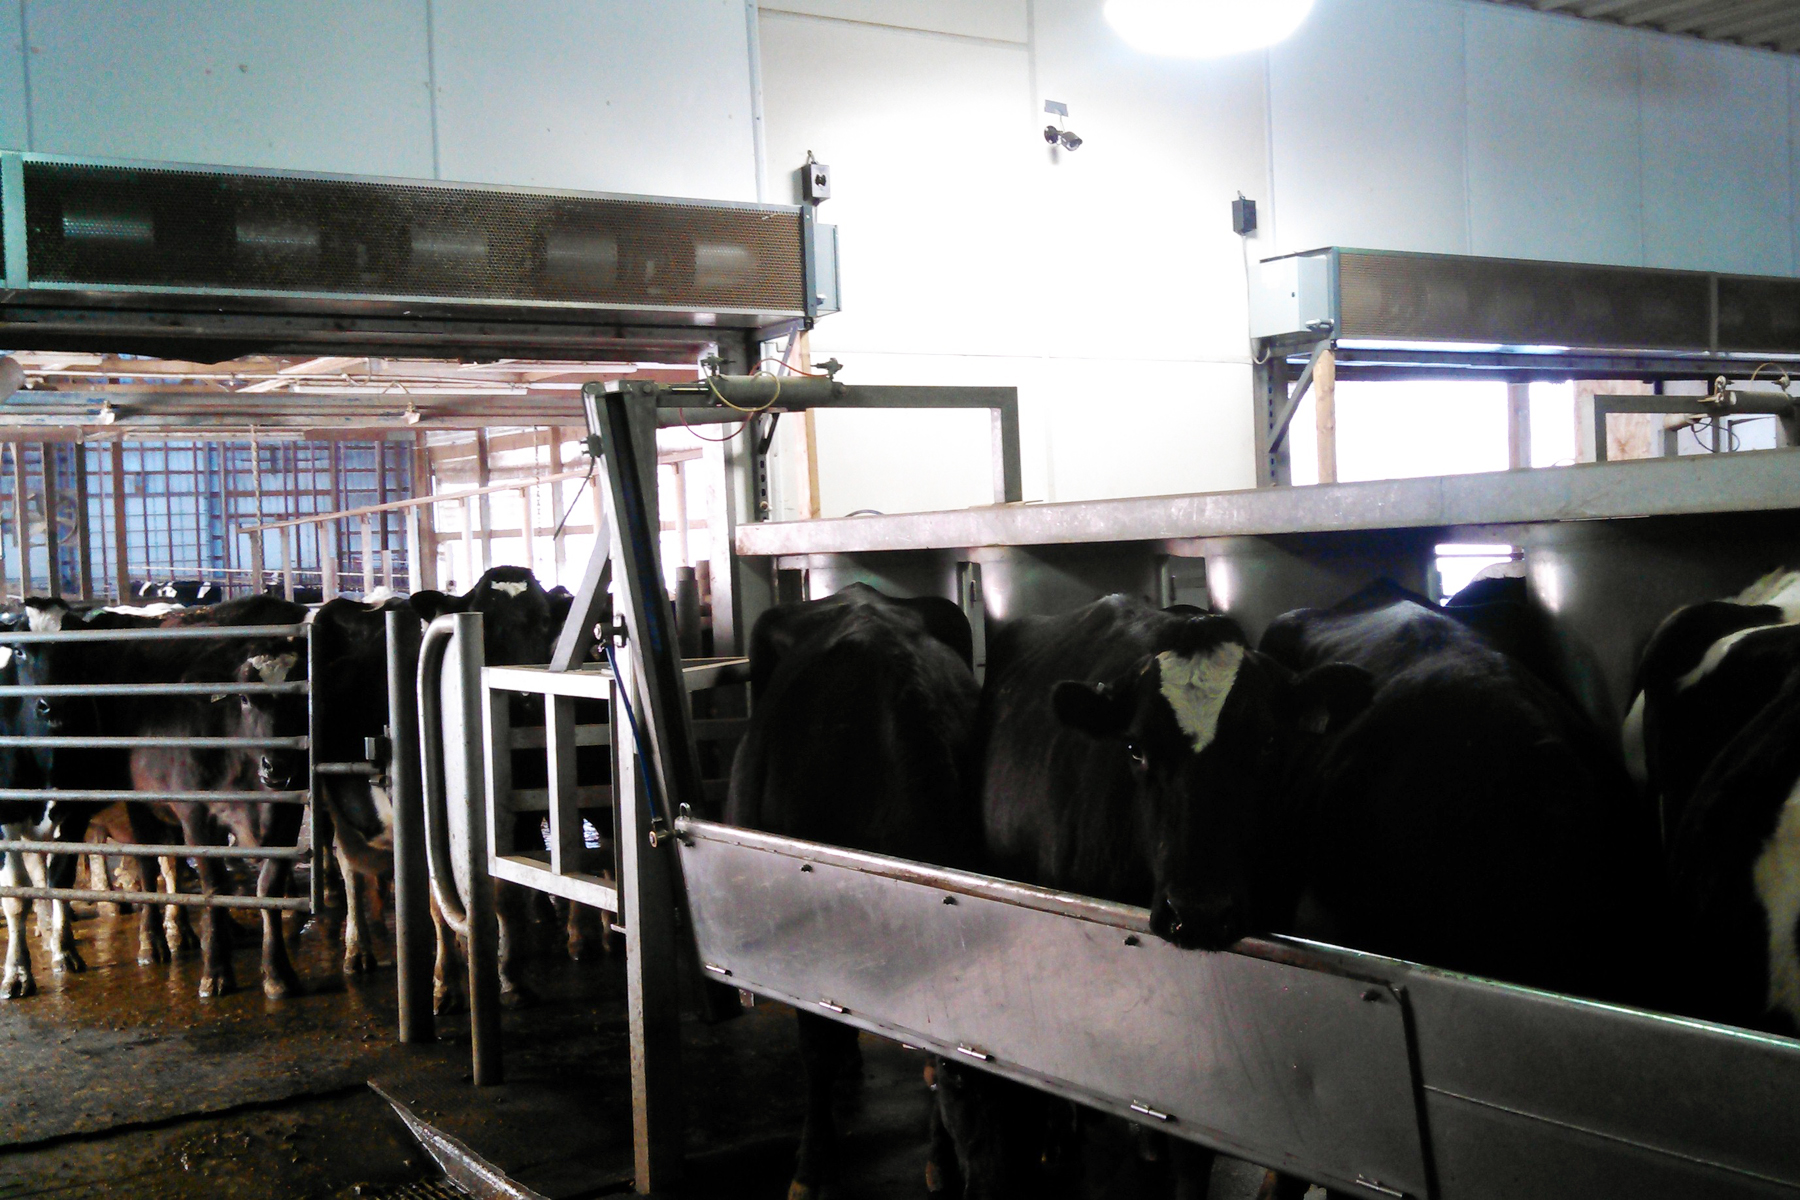 Farmers can employ air curtain technology for preventing energy losses and flying insect infiltration of agricultural buildings. Griesen's Family Dairy (Wisconsin) installed two 4.6-m (16-ft) long air curtains—once custom orders, but now catalogue items for some manufacturers, reducing cost and availability wait times.